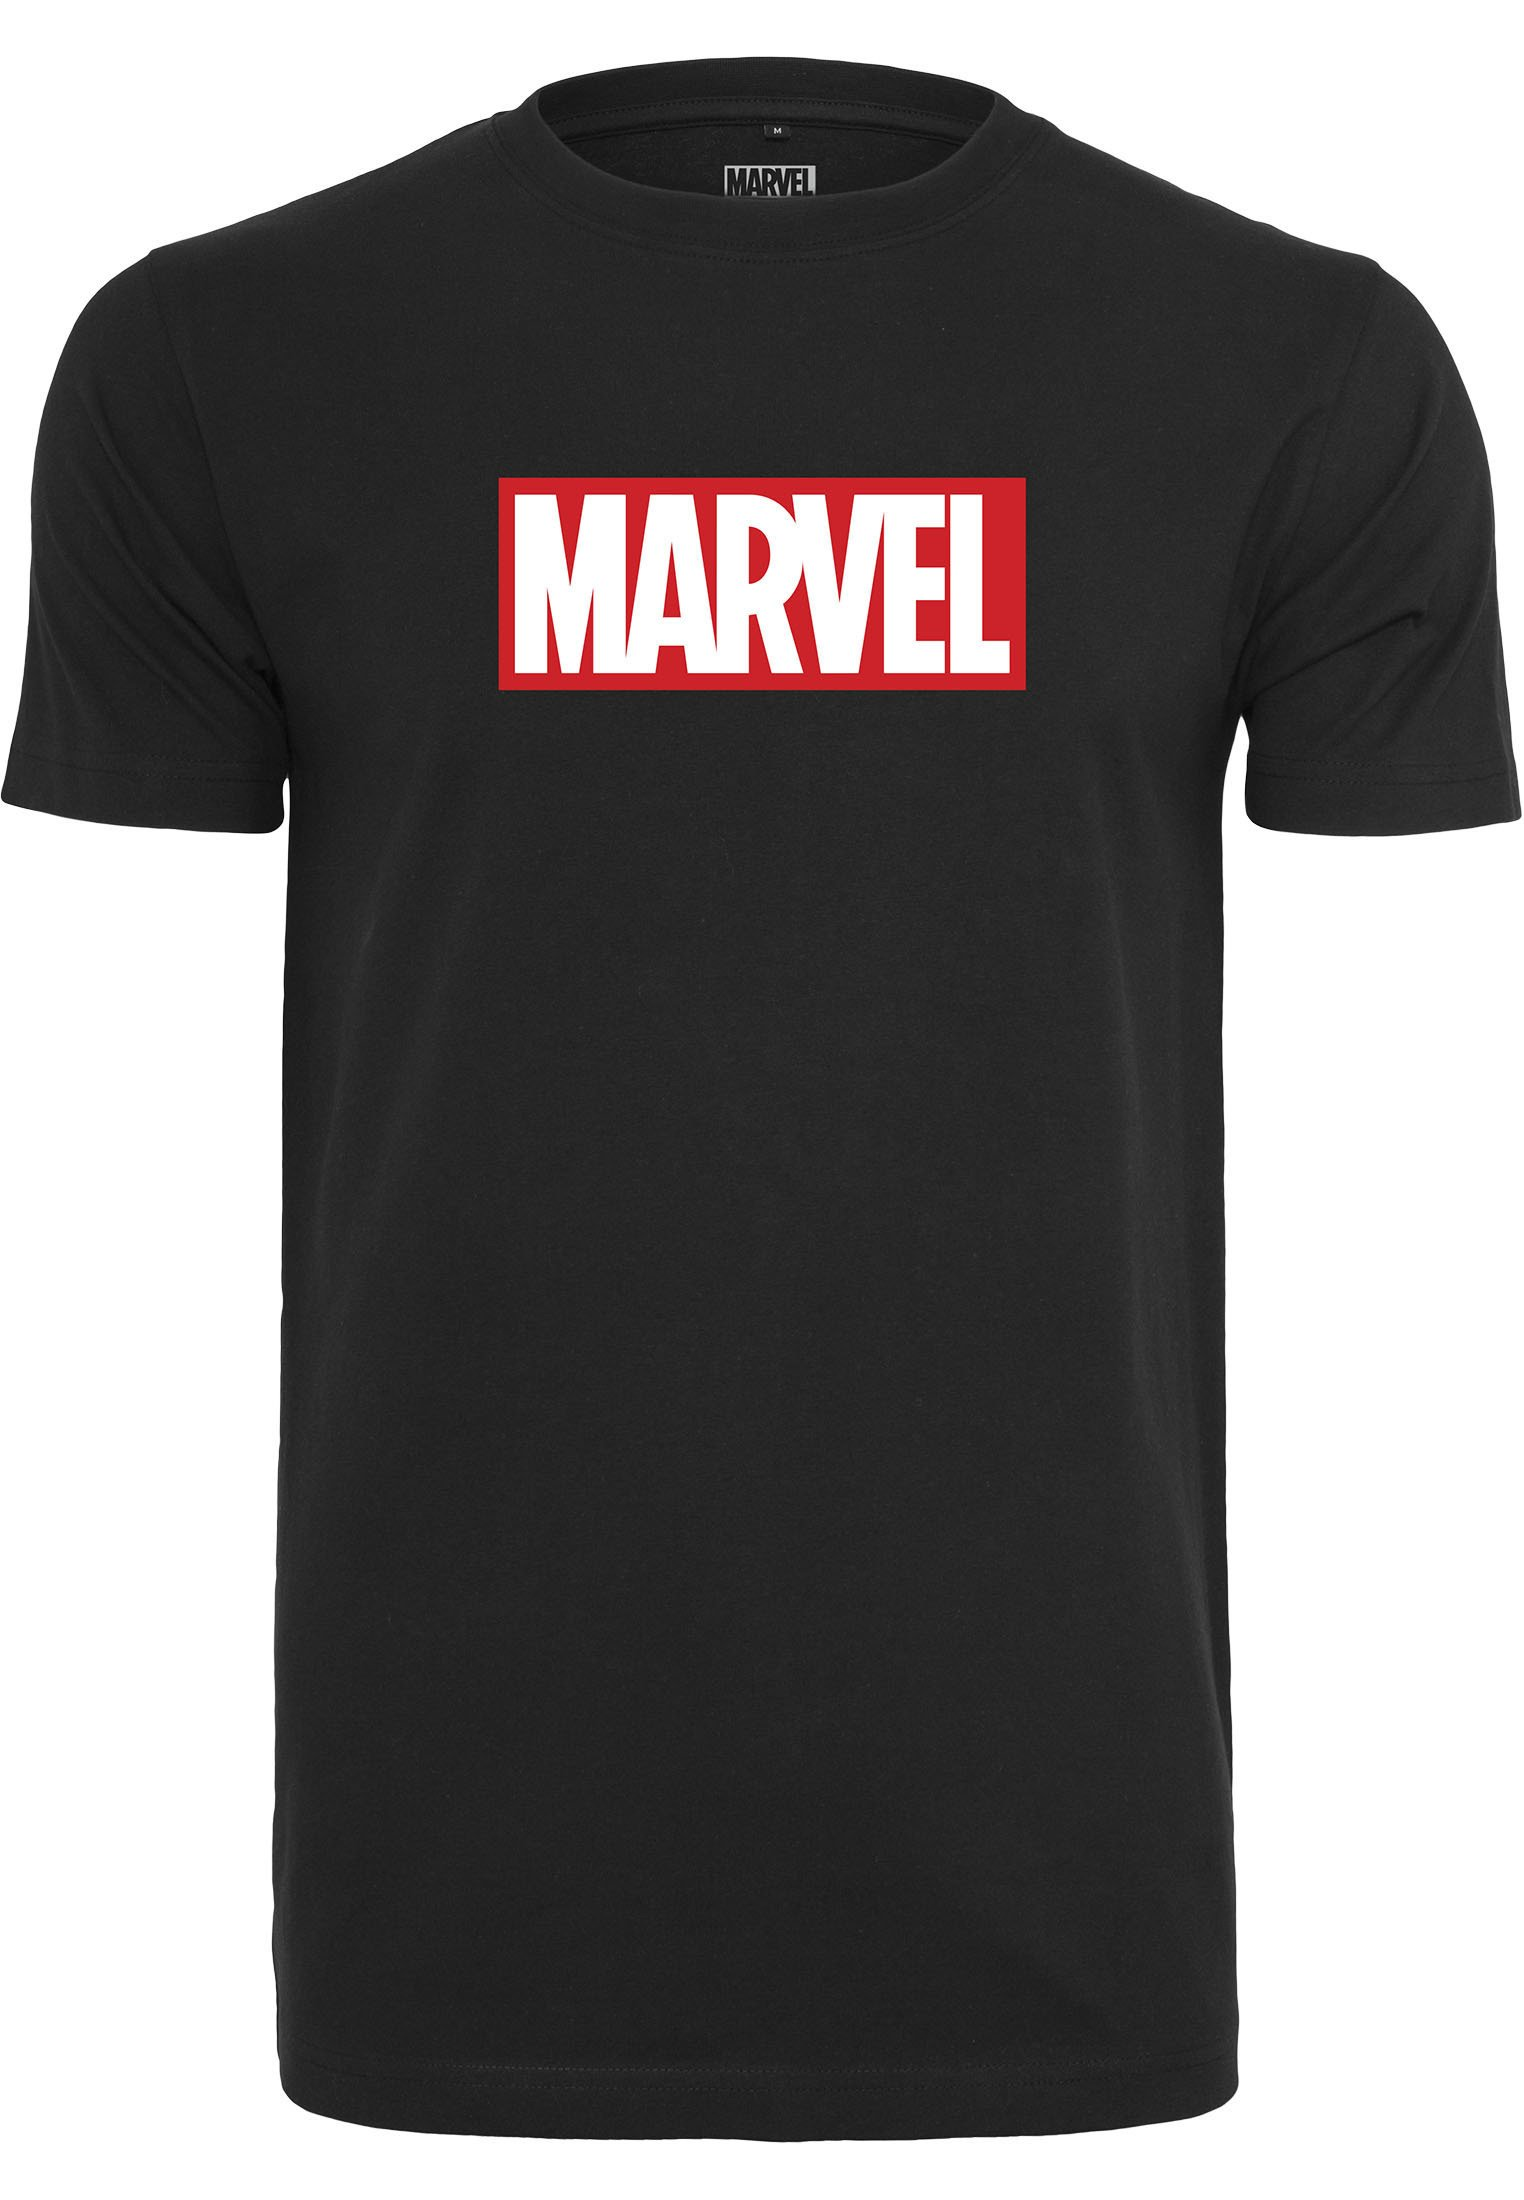 MARVEL T shirt print black